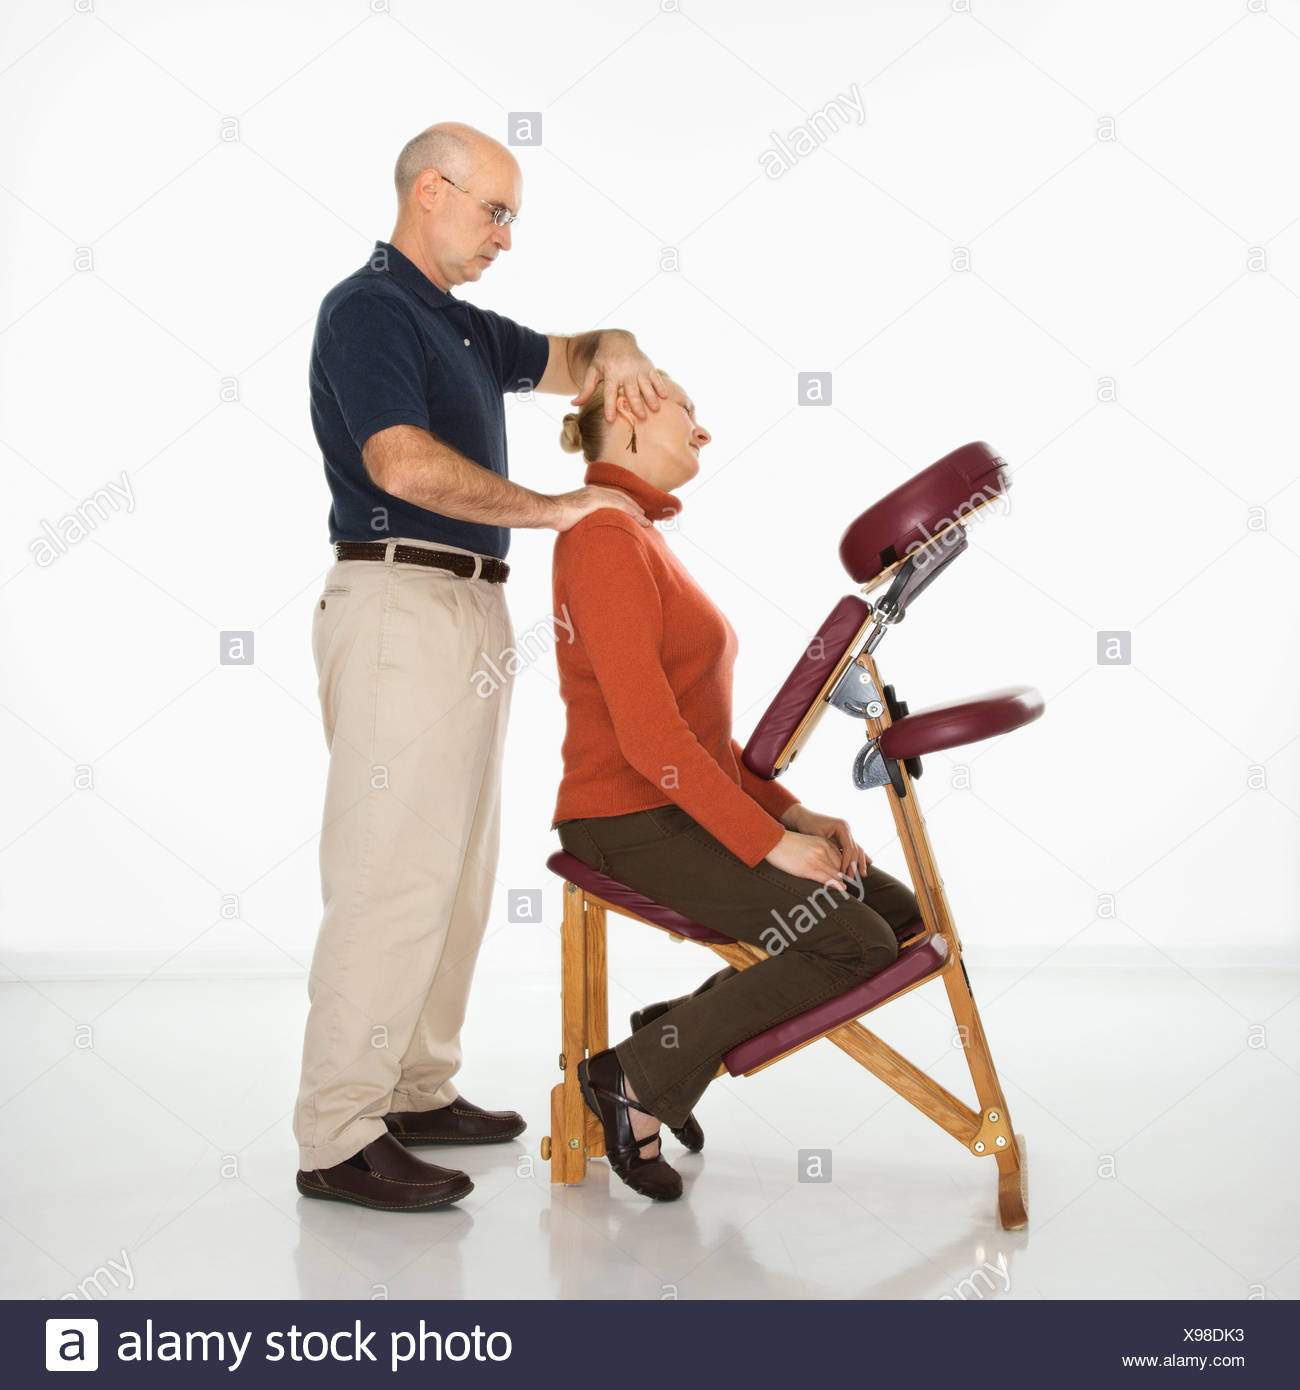 Massage Therapist Chair Caucasian Middle Aged Male Massage Therapist Massaging Neck Of